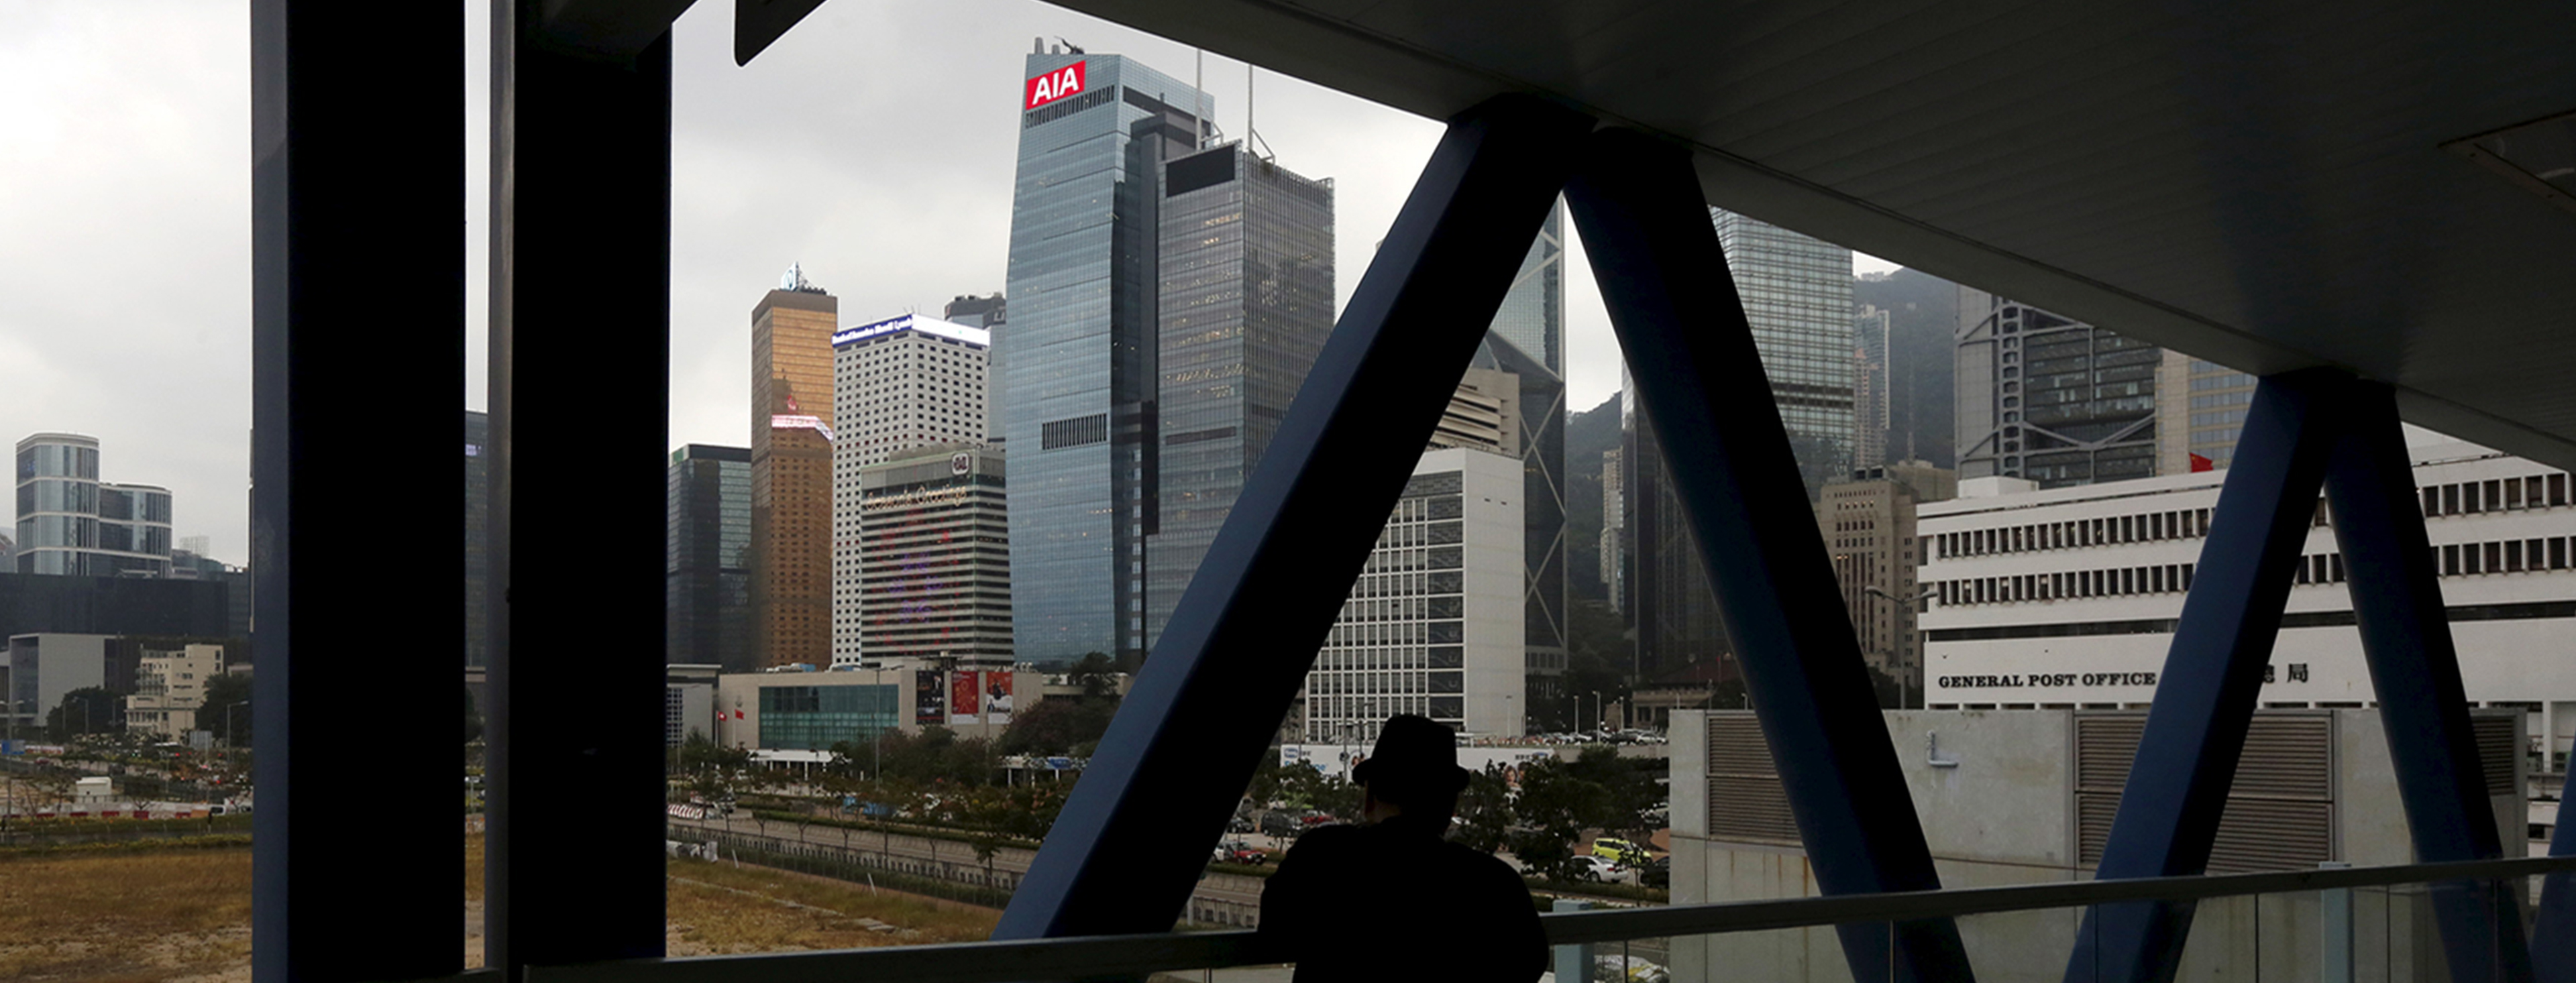 A man stands on a footbridge in front of AIA Central at the financial Central district in Hong Kong, China